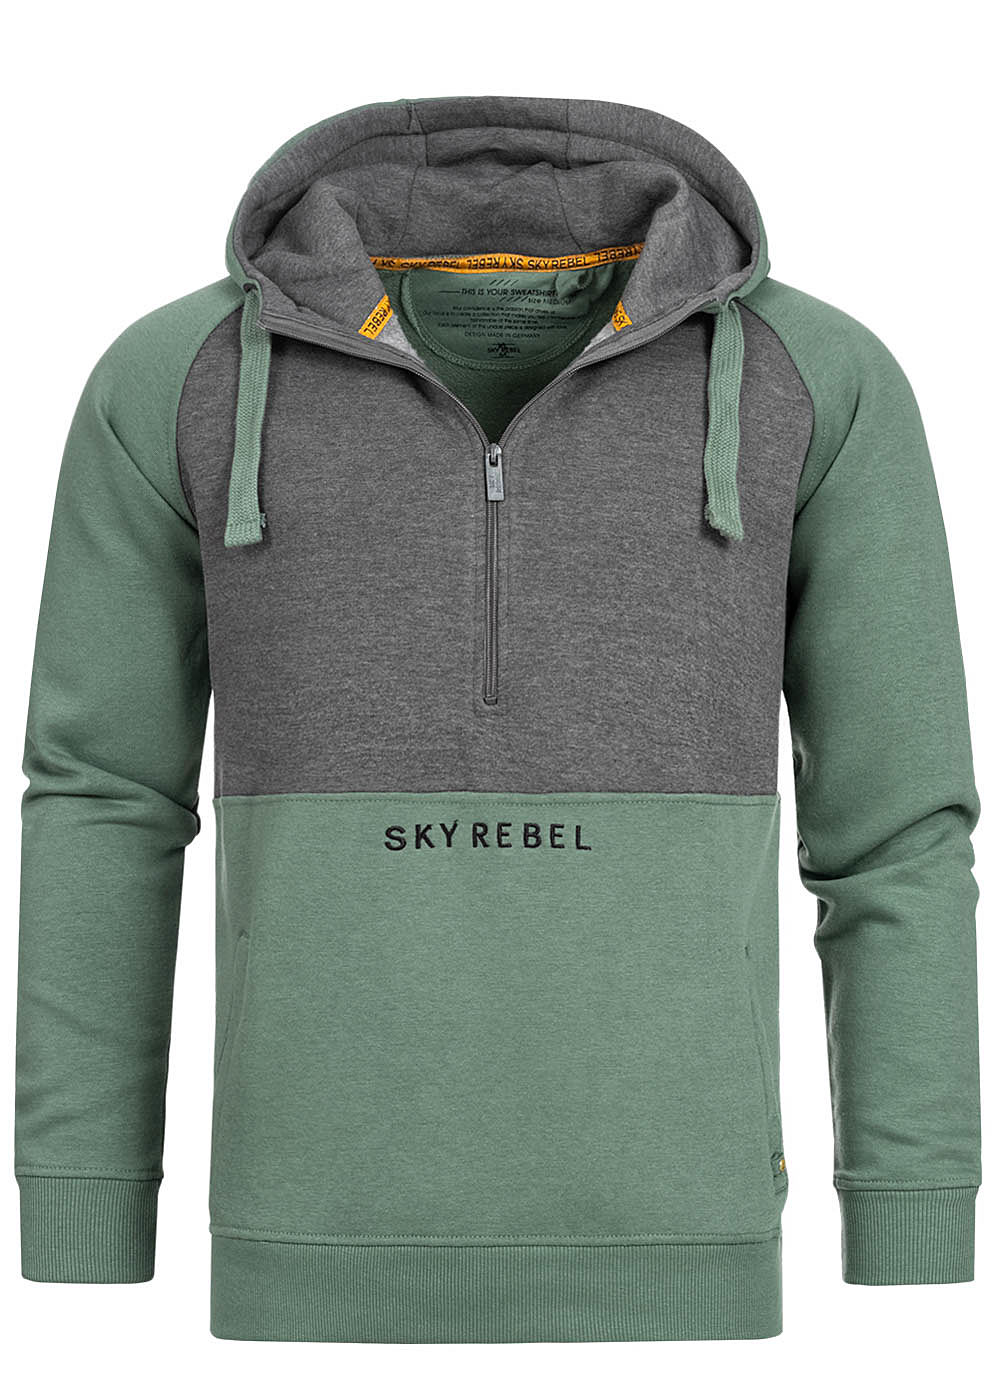 Eight2Nine Herren 2-Tone Half-Zip Hoodie Kapuze Logo by Sky Rebel forest grün grau - Art.-Nr.: 20084038